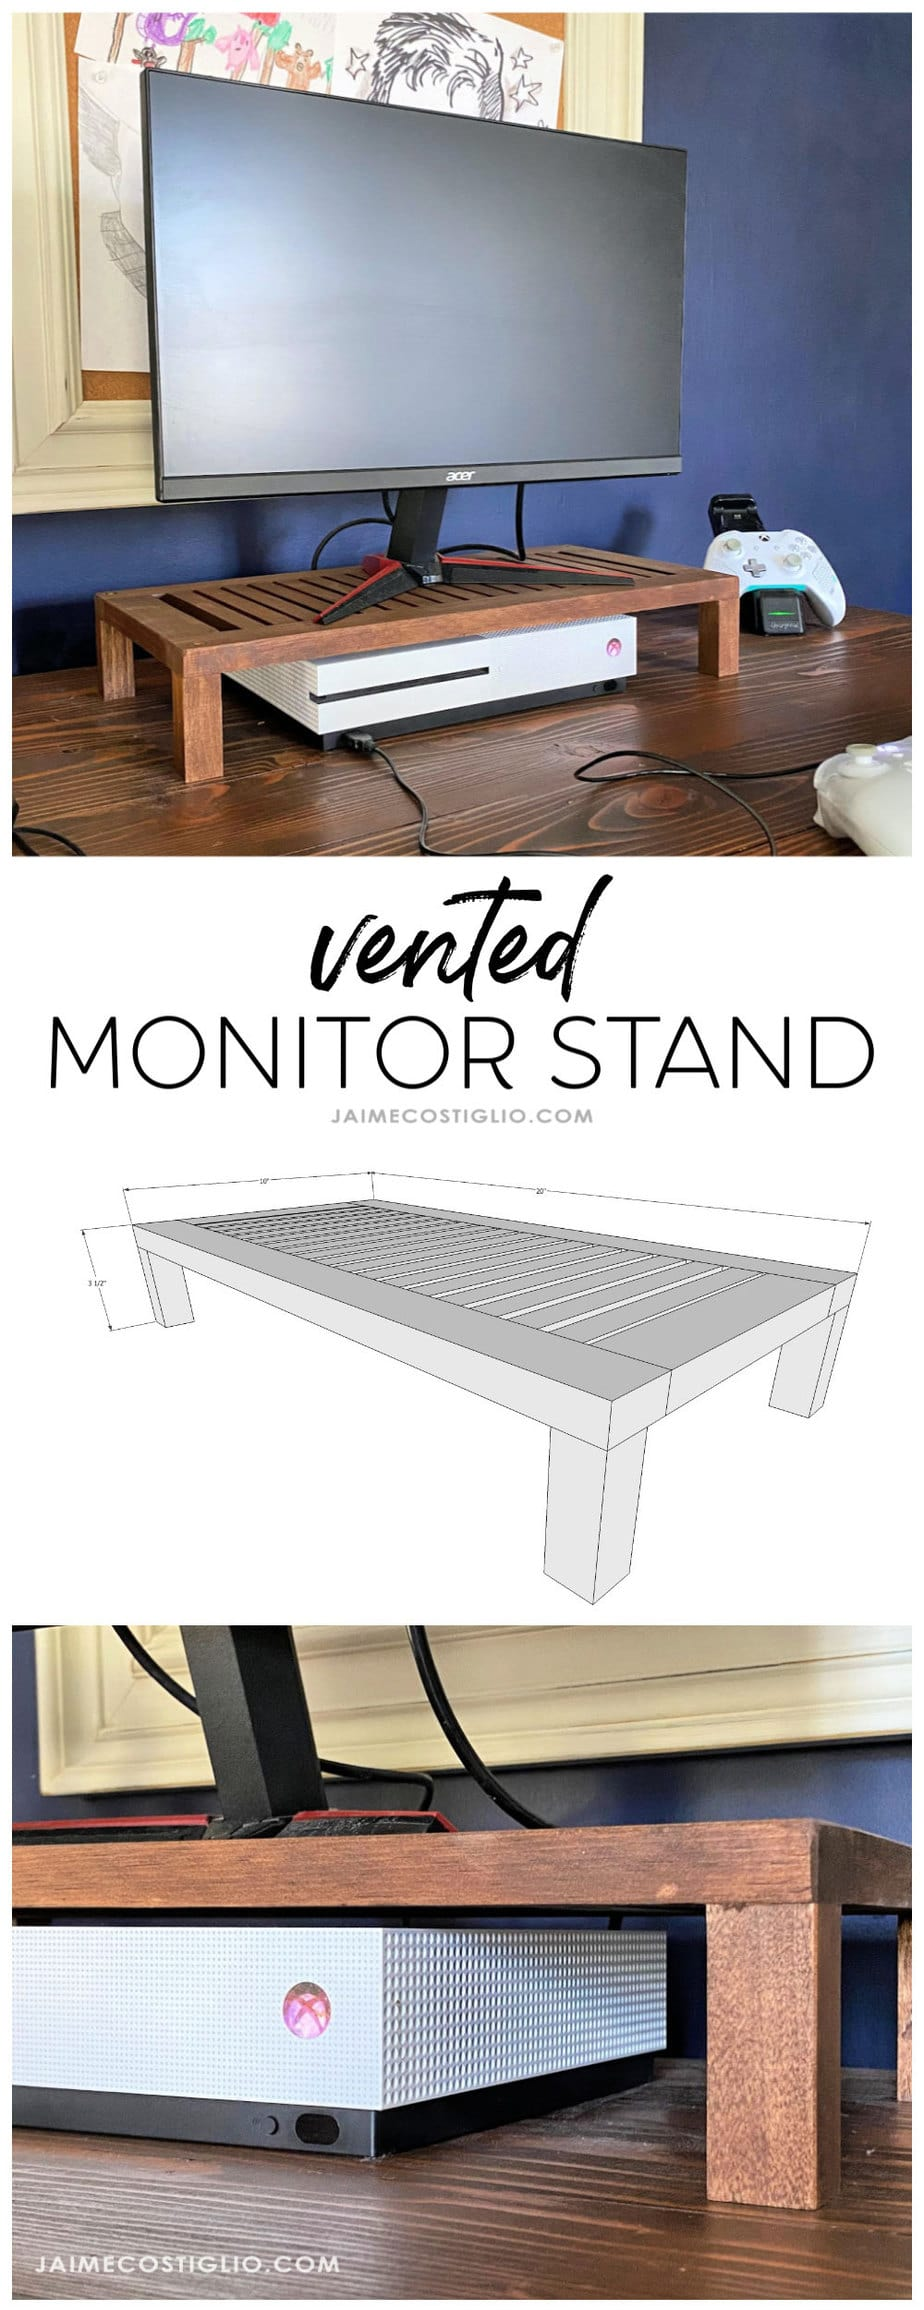 vented monitor stand plans